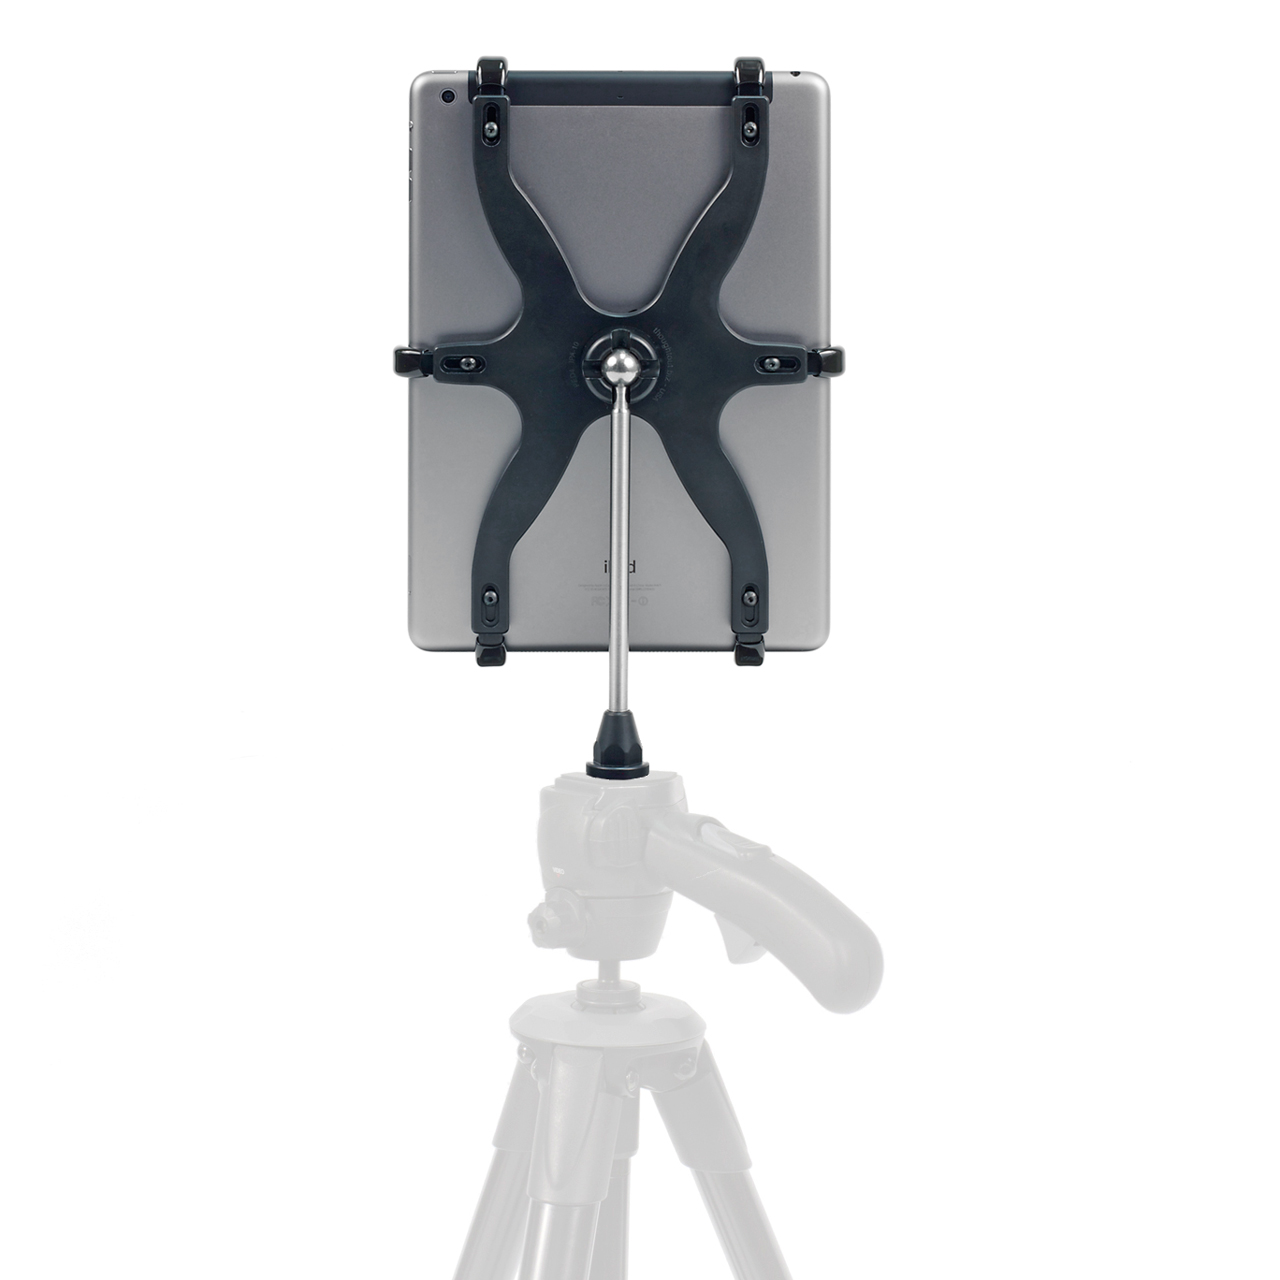 Converts to an iPad tripod mount